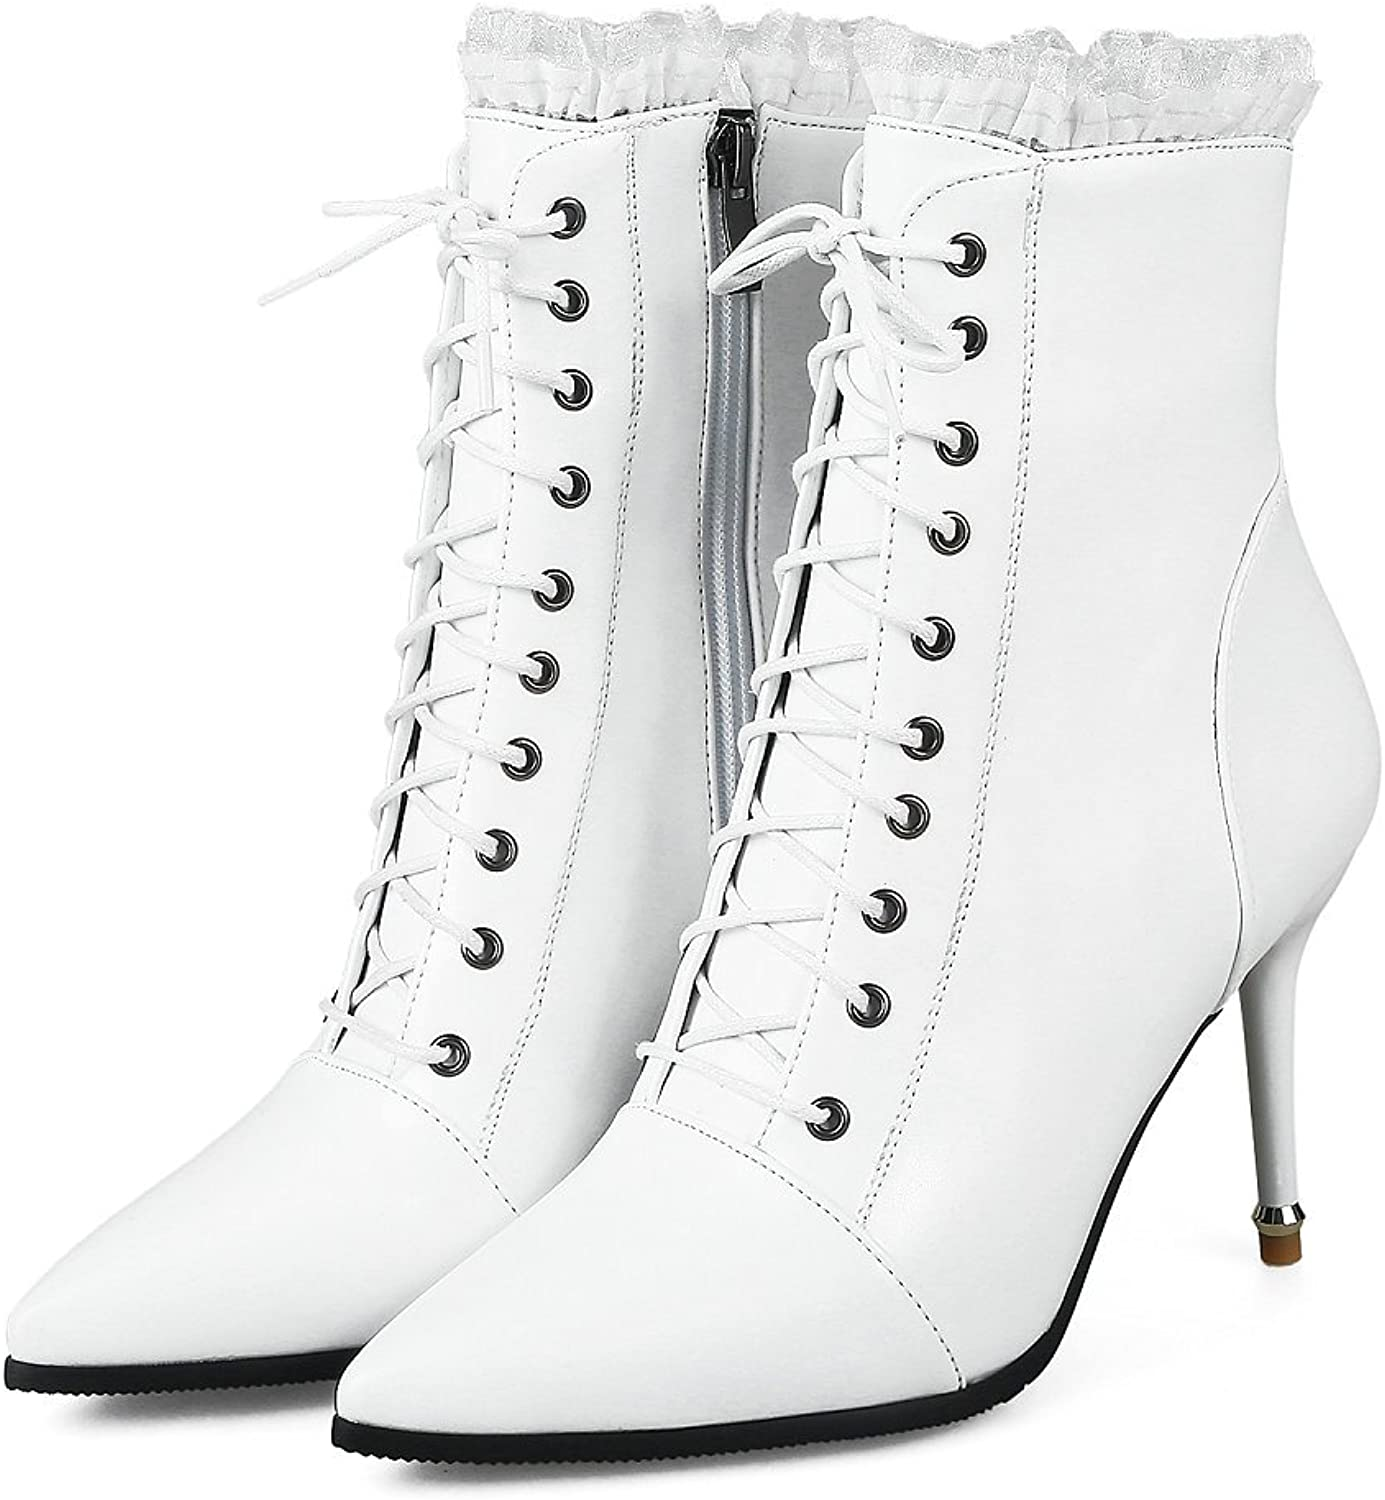 Women Lace Up Stiletto Ankle Boots Spring Dress High Heel Leather Booties Sexy Pointed Toe Black